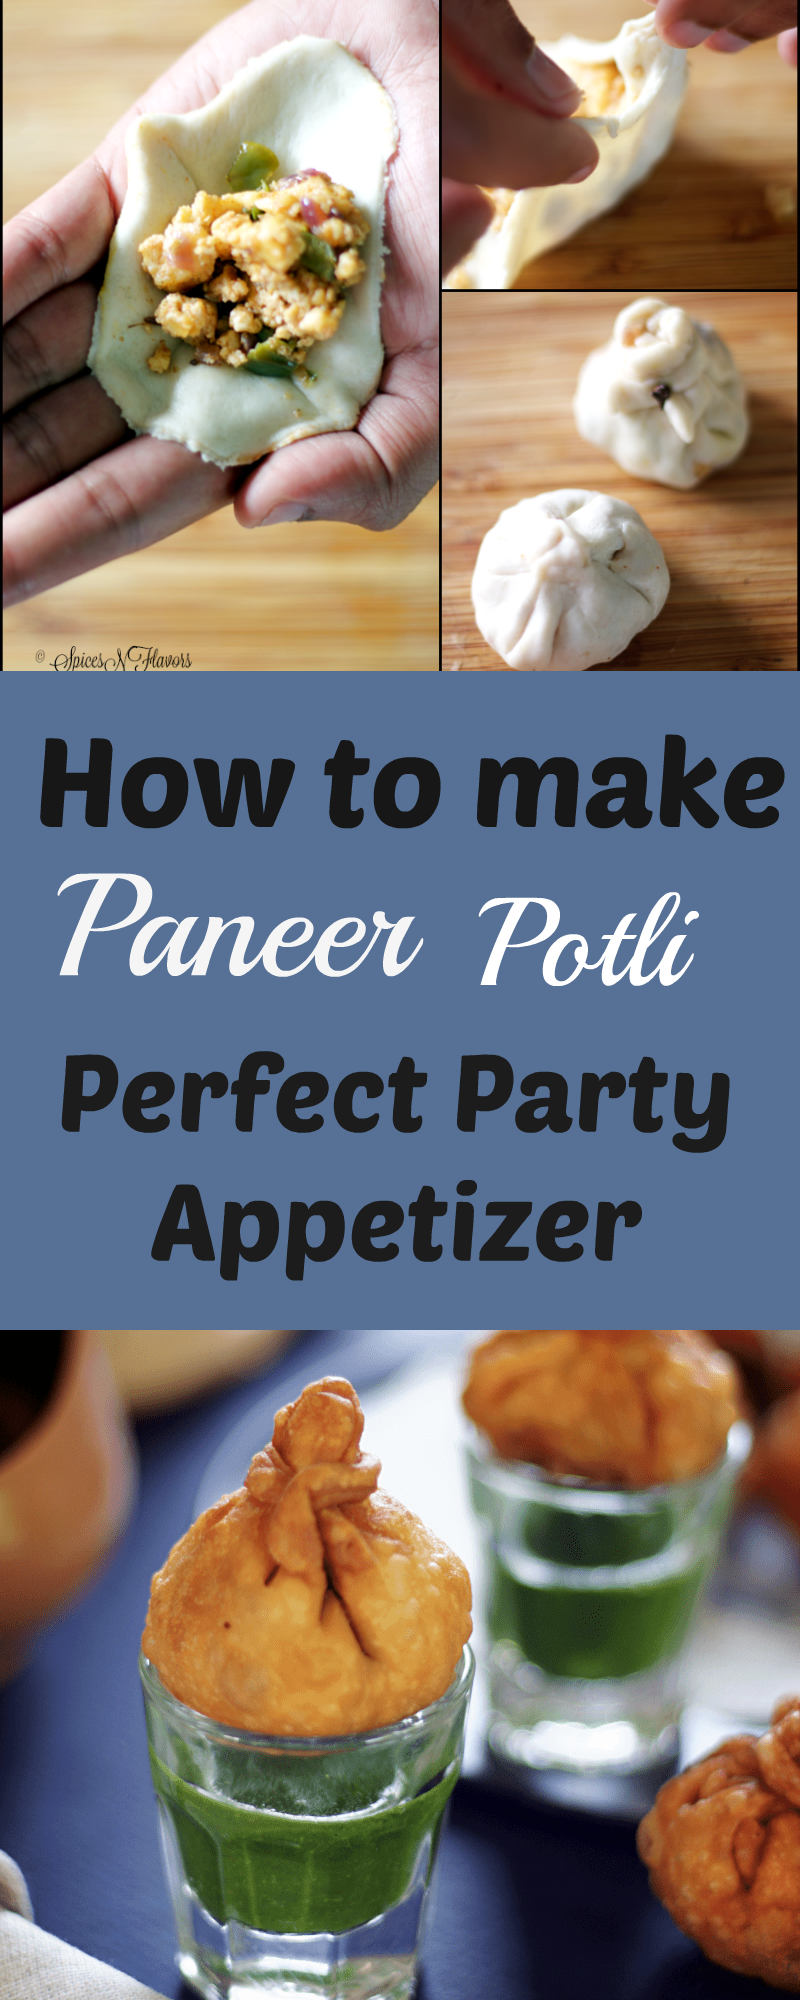 Paneer Potli - Party Appetizer/ Starter | Recipe | Party appetizers ...